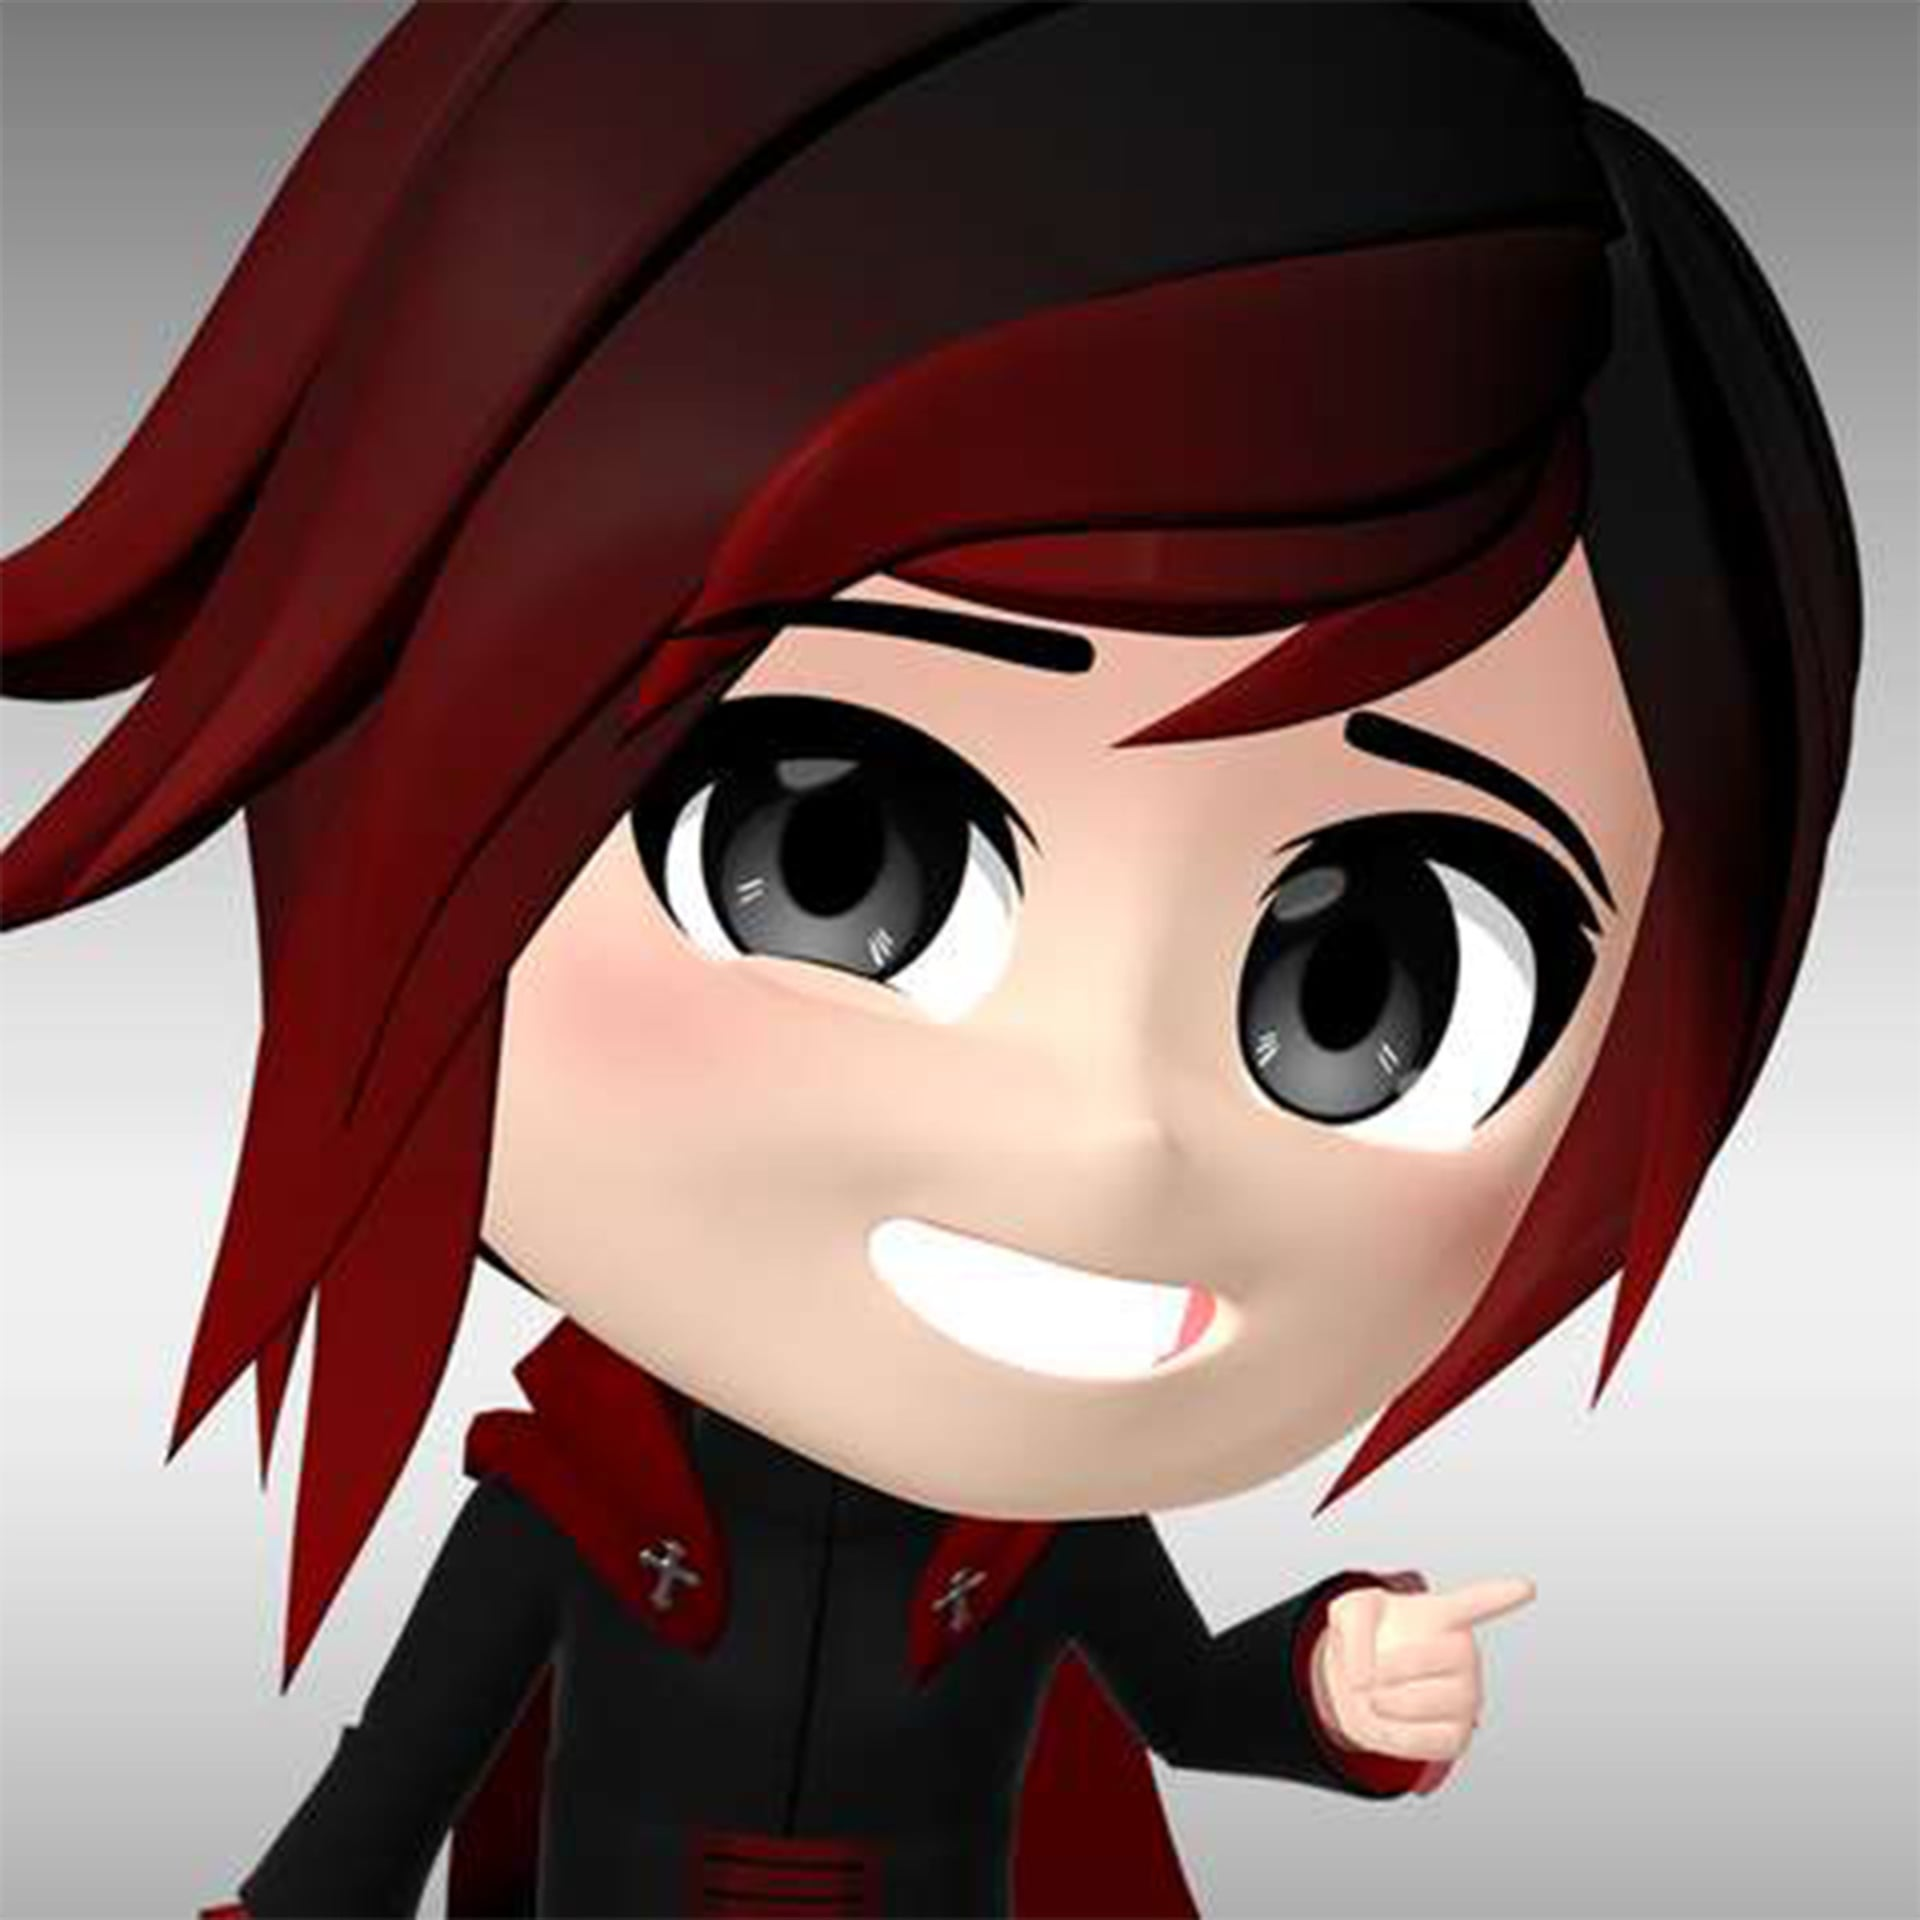 Series RWBY Chibi - Rooster Teeth